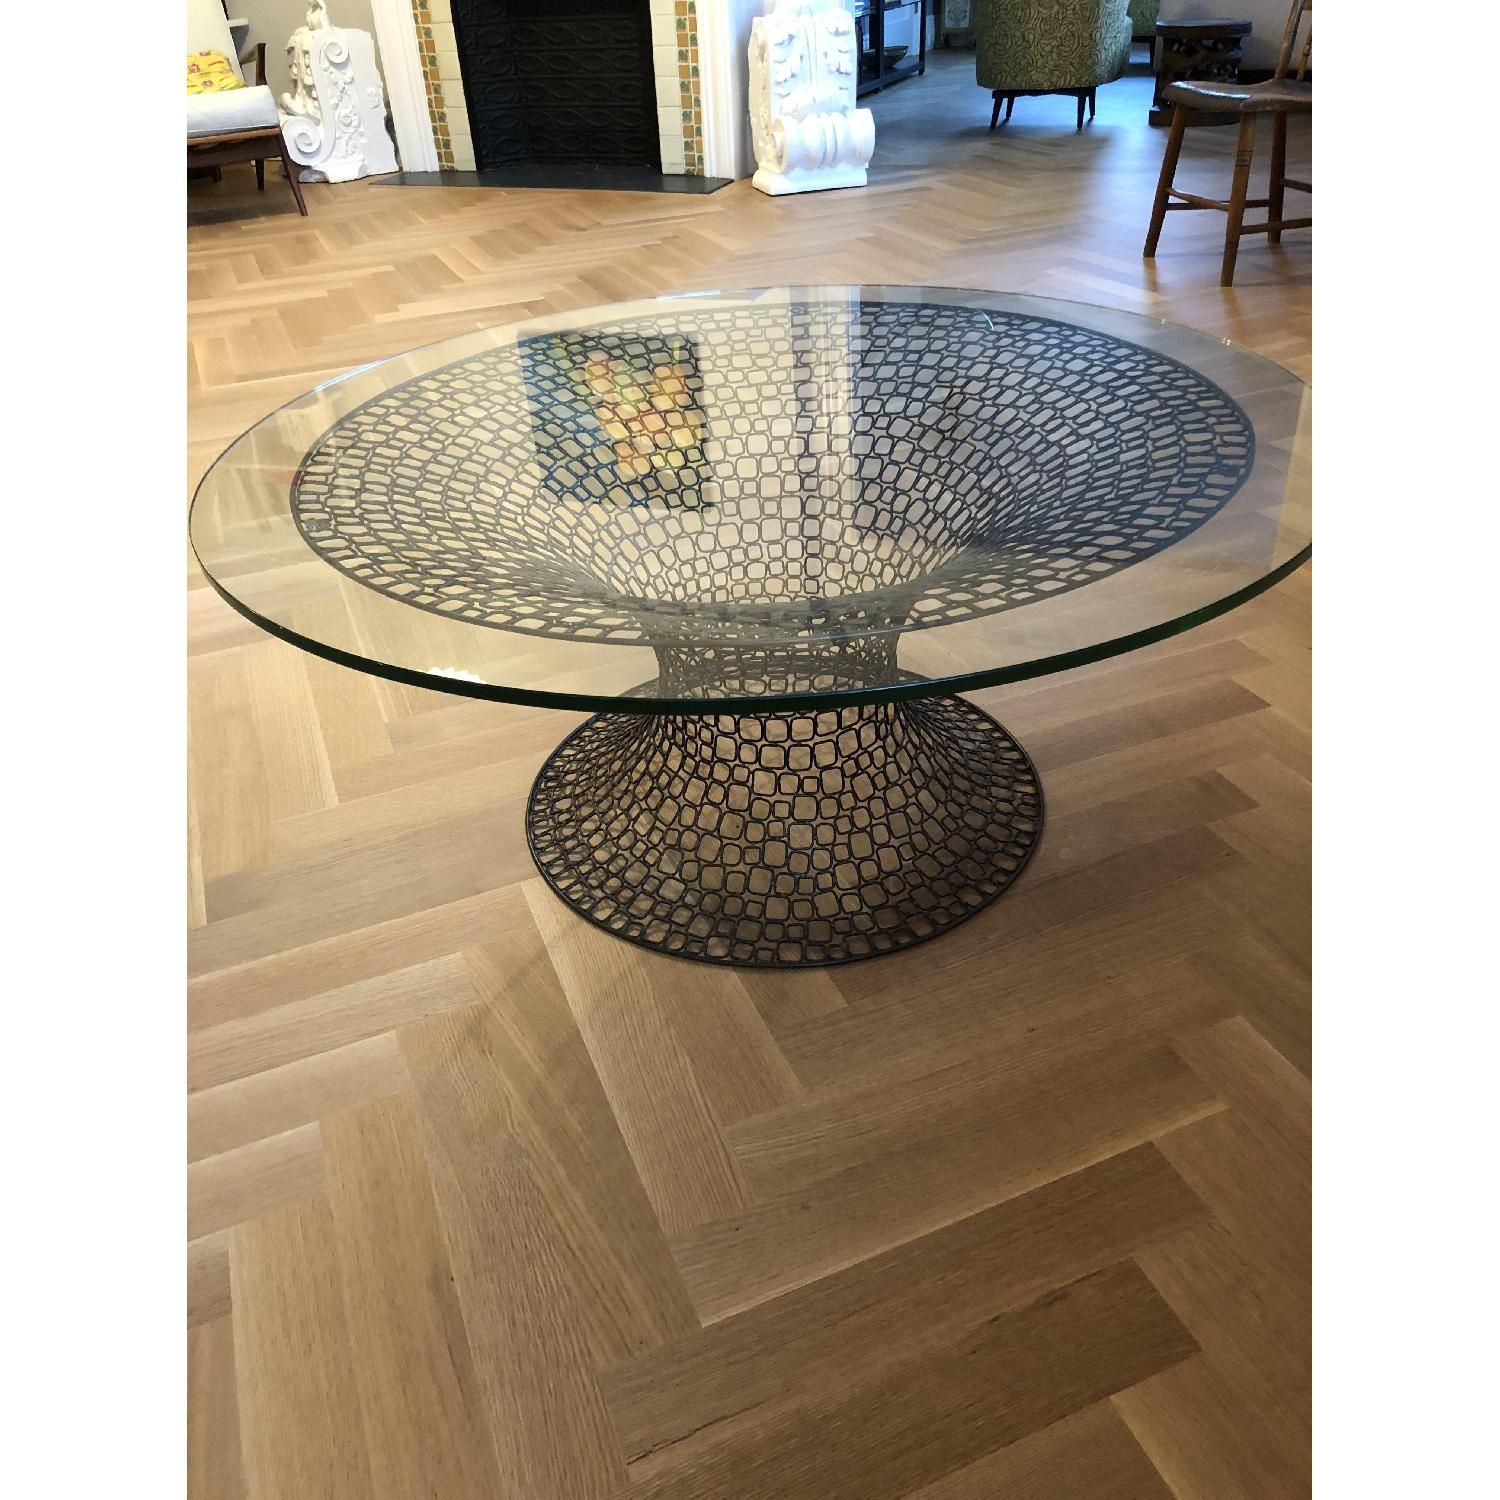 ... Mid Century Modern Glass Top Round Coffee Table 0 ...